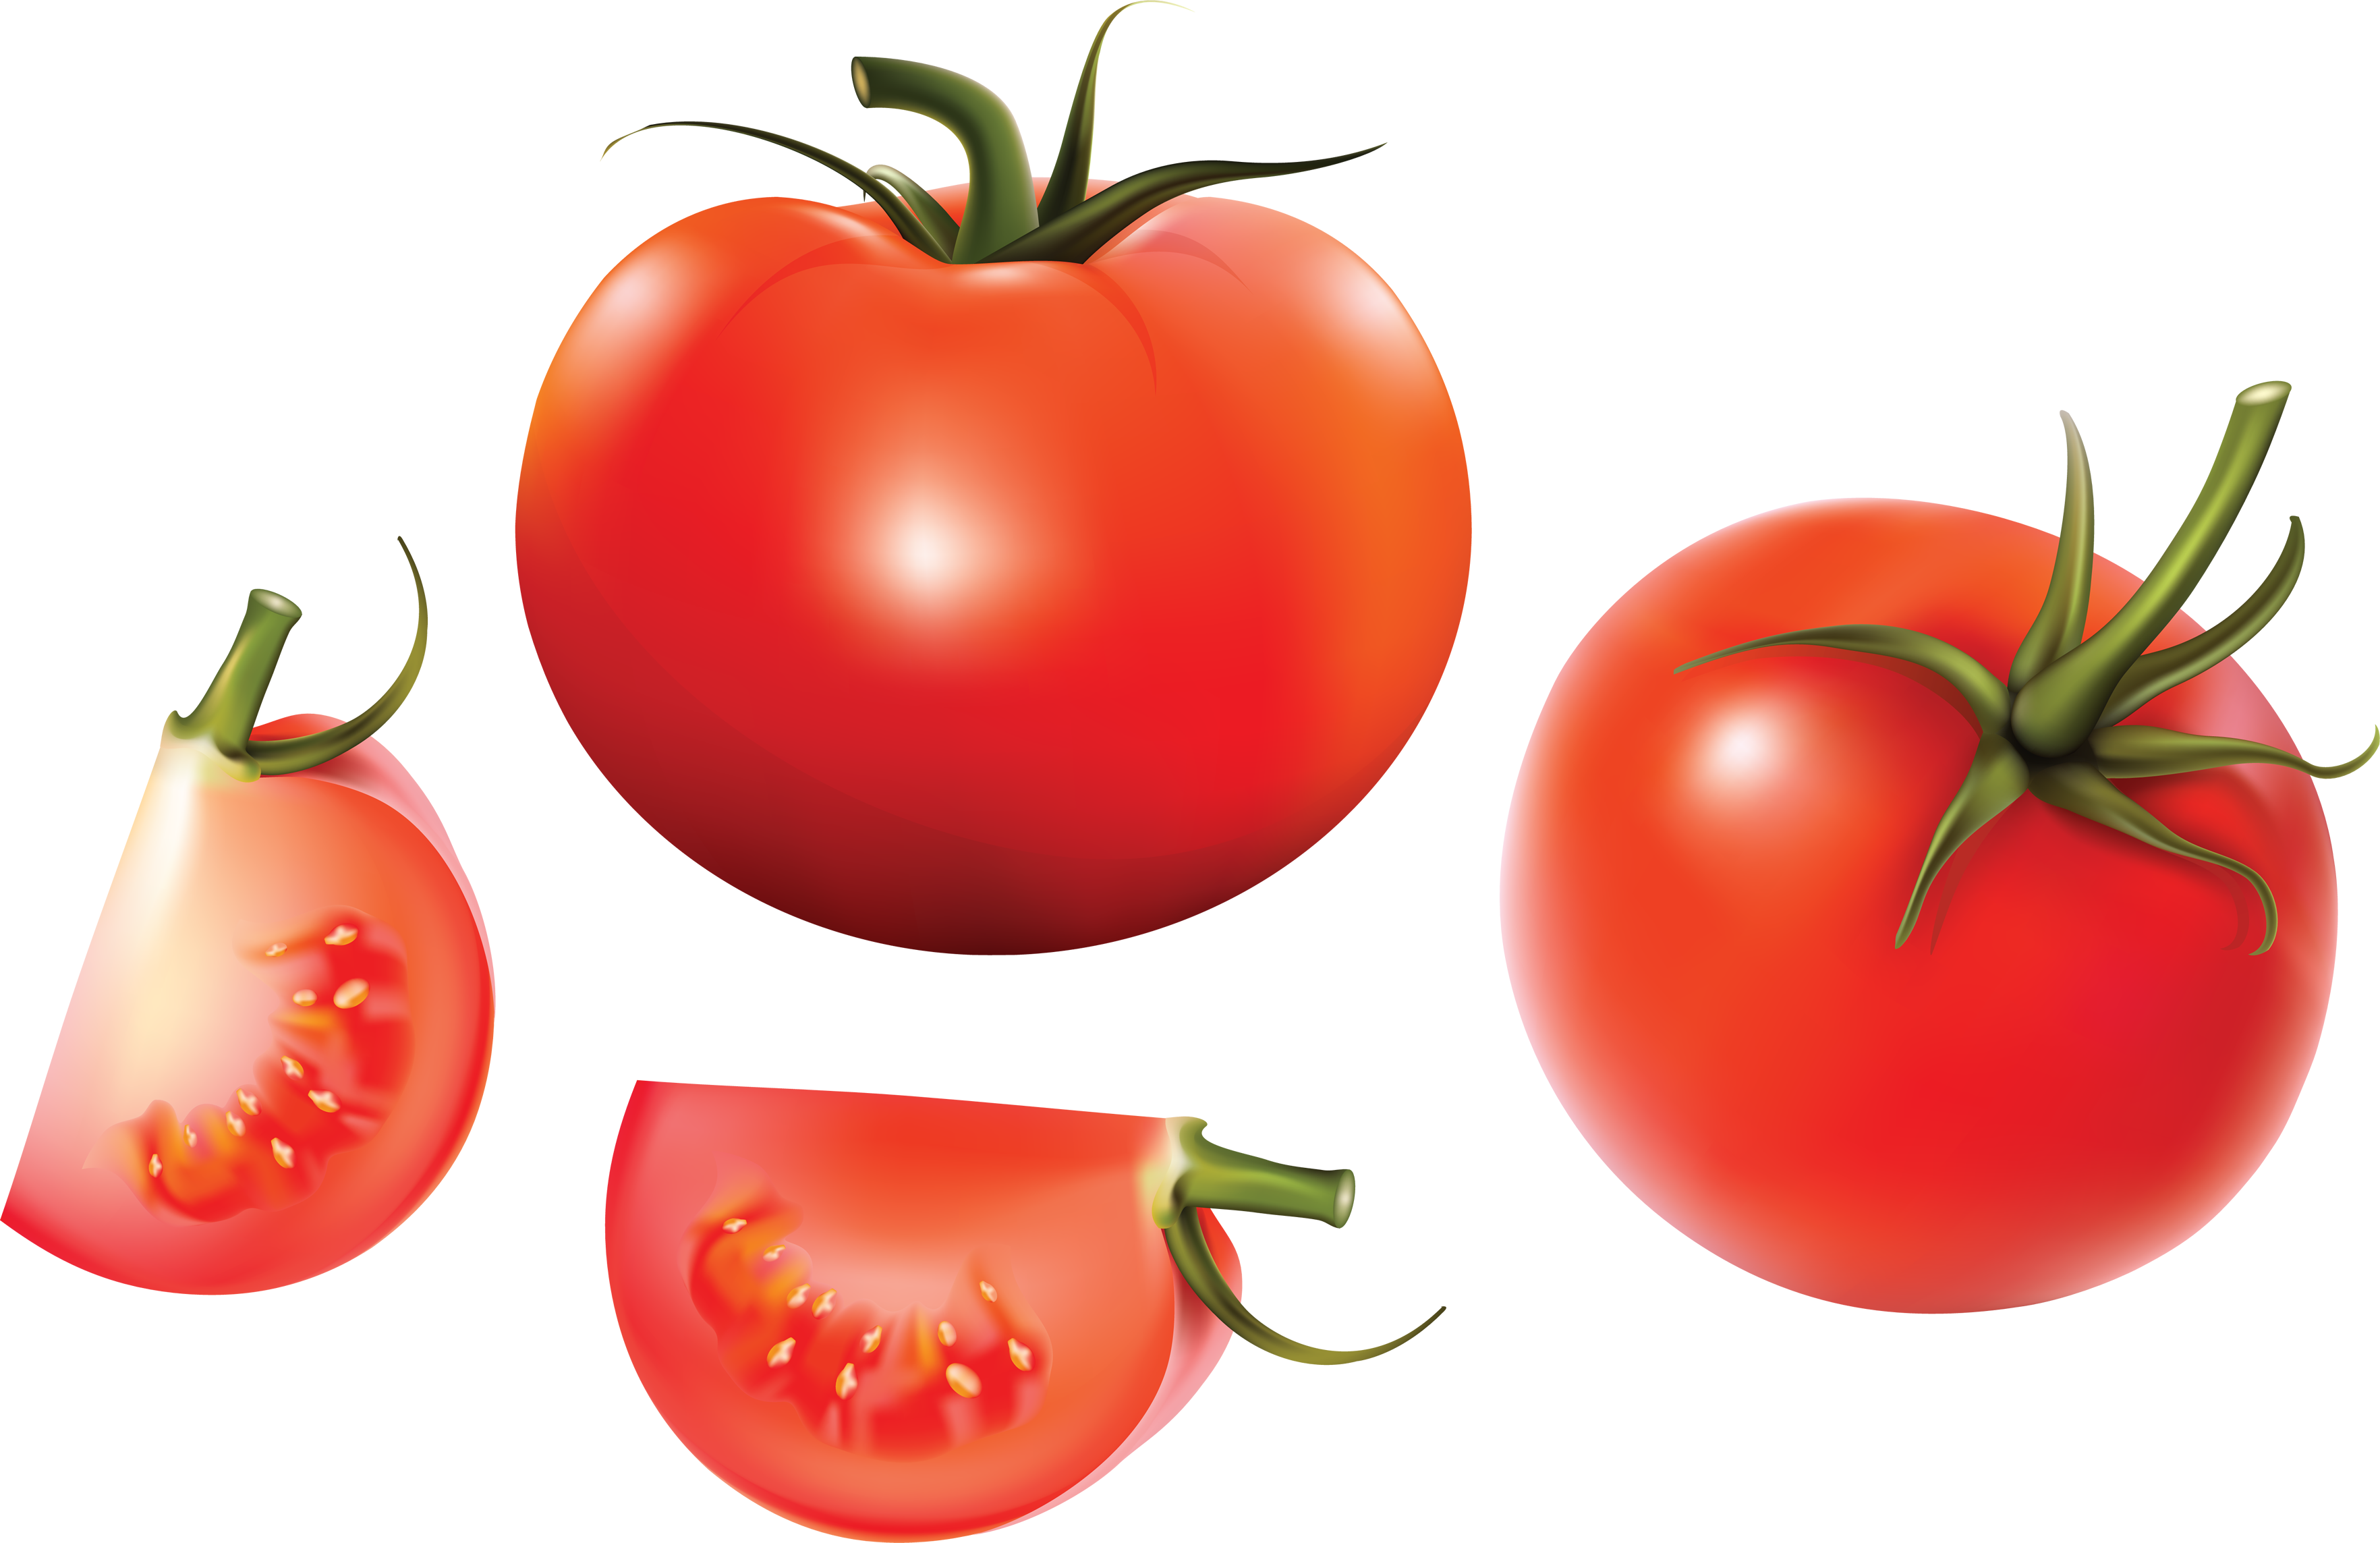 Pin by hopeless on. Tomatoes clipart tomato garden